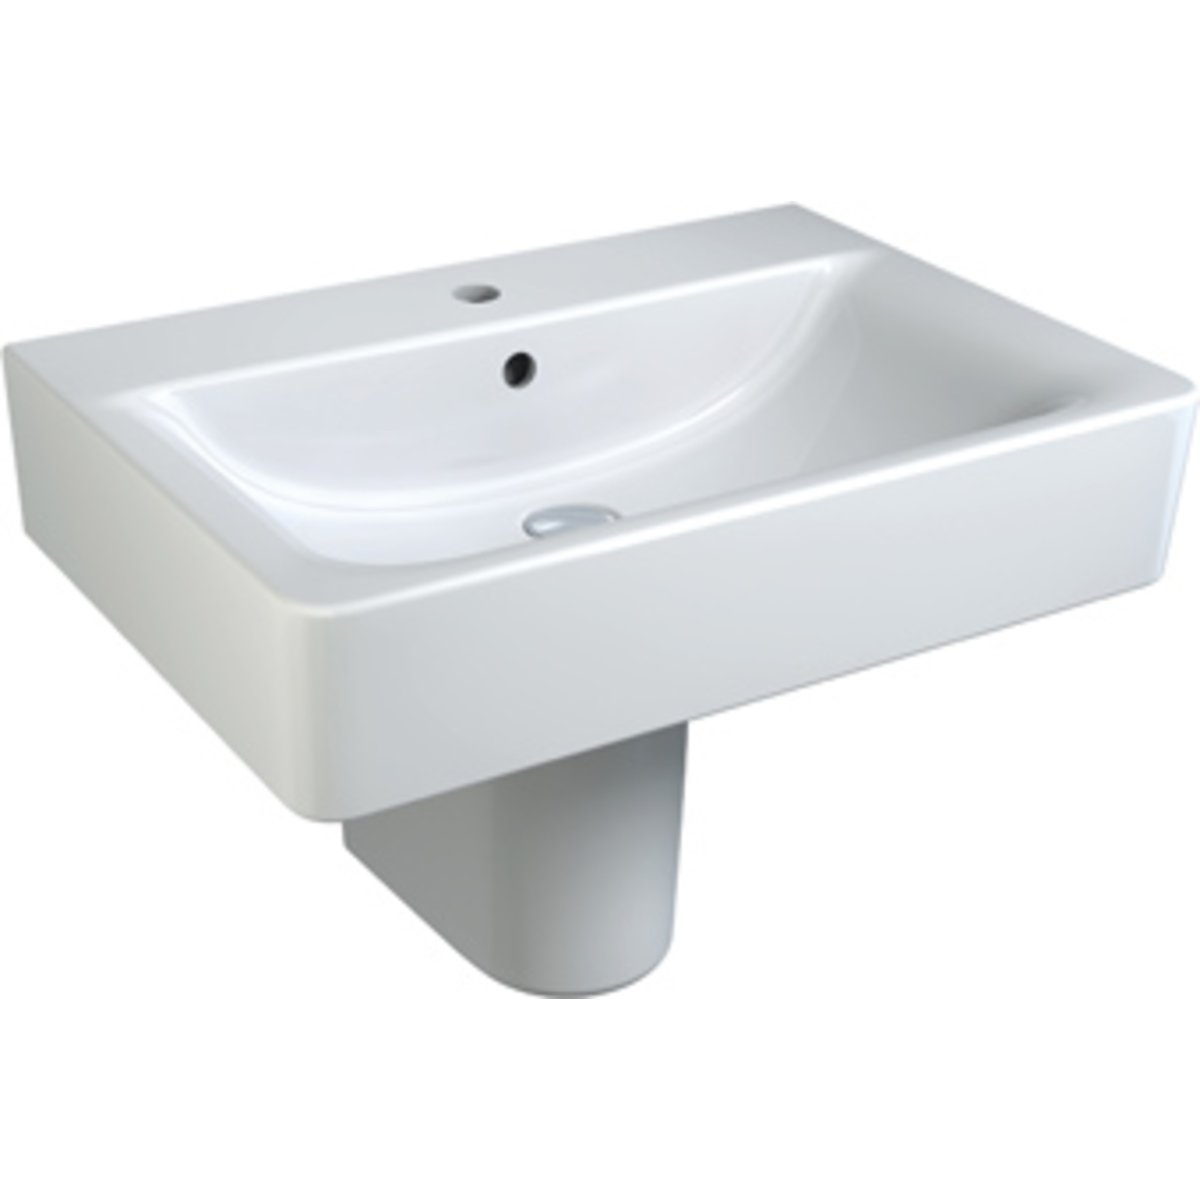 Ideal standard connect cube lavabo 65x46cm ideal plus for Ideal standard connect